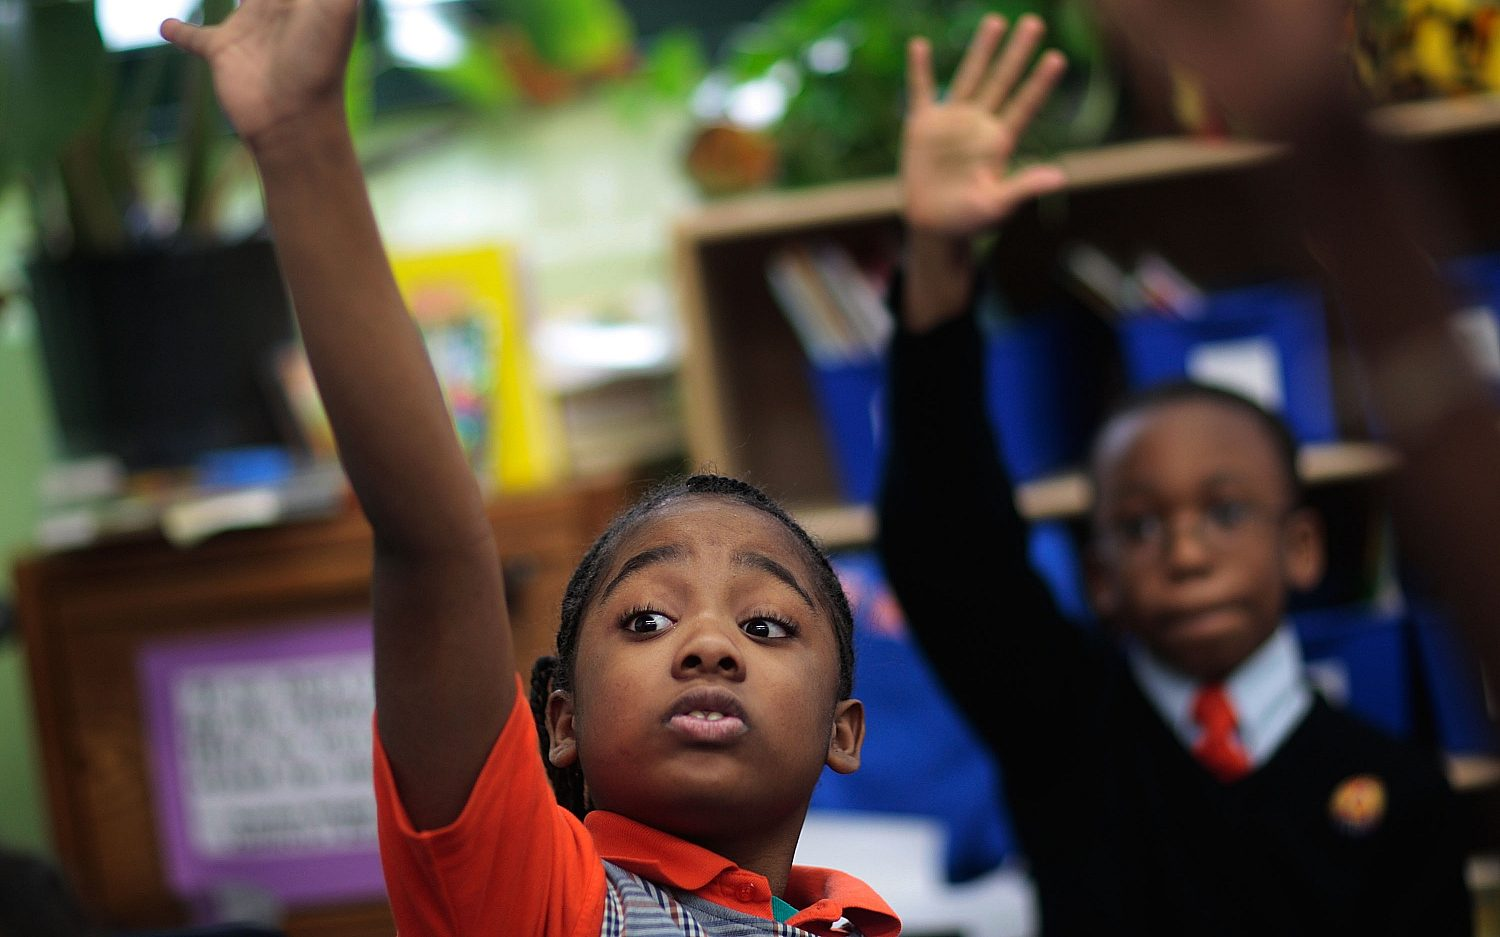 New York's charter school champion chalks up another win